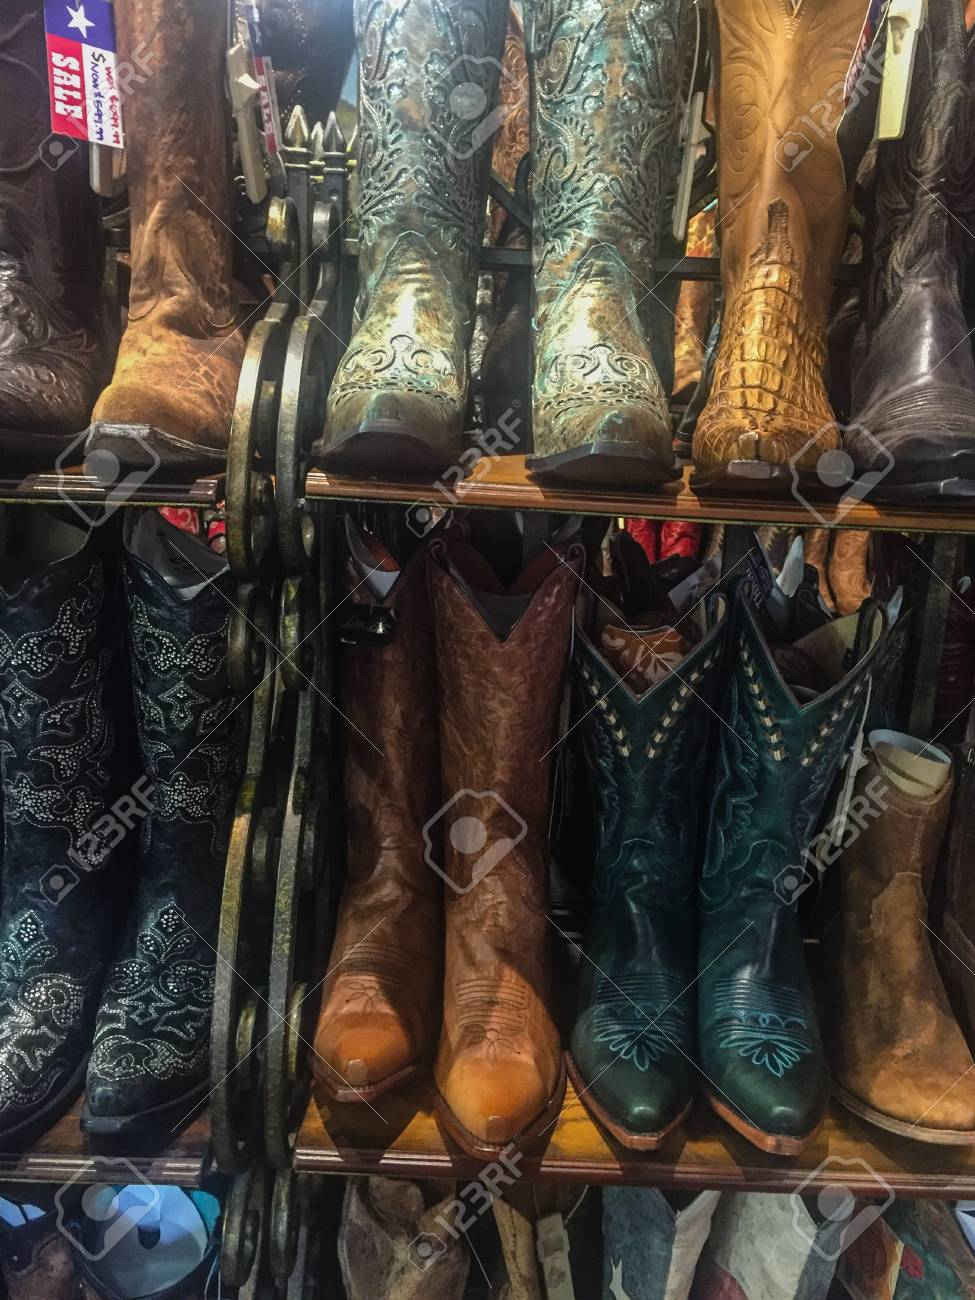 a30d16a27f0 Rows of cowboy boots on shelf in store in Dallas, Texas Stock Photo -  57890719